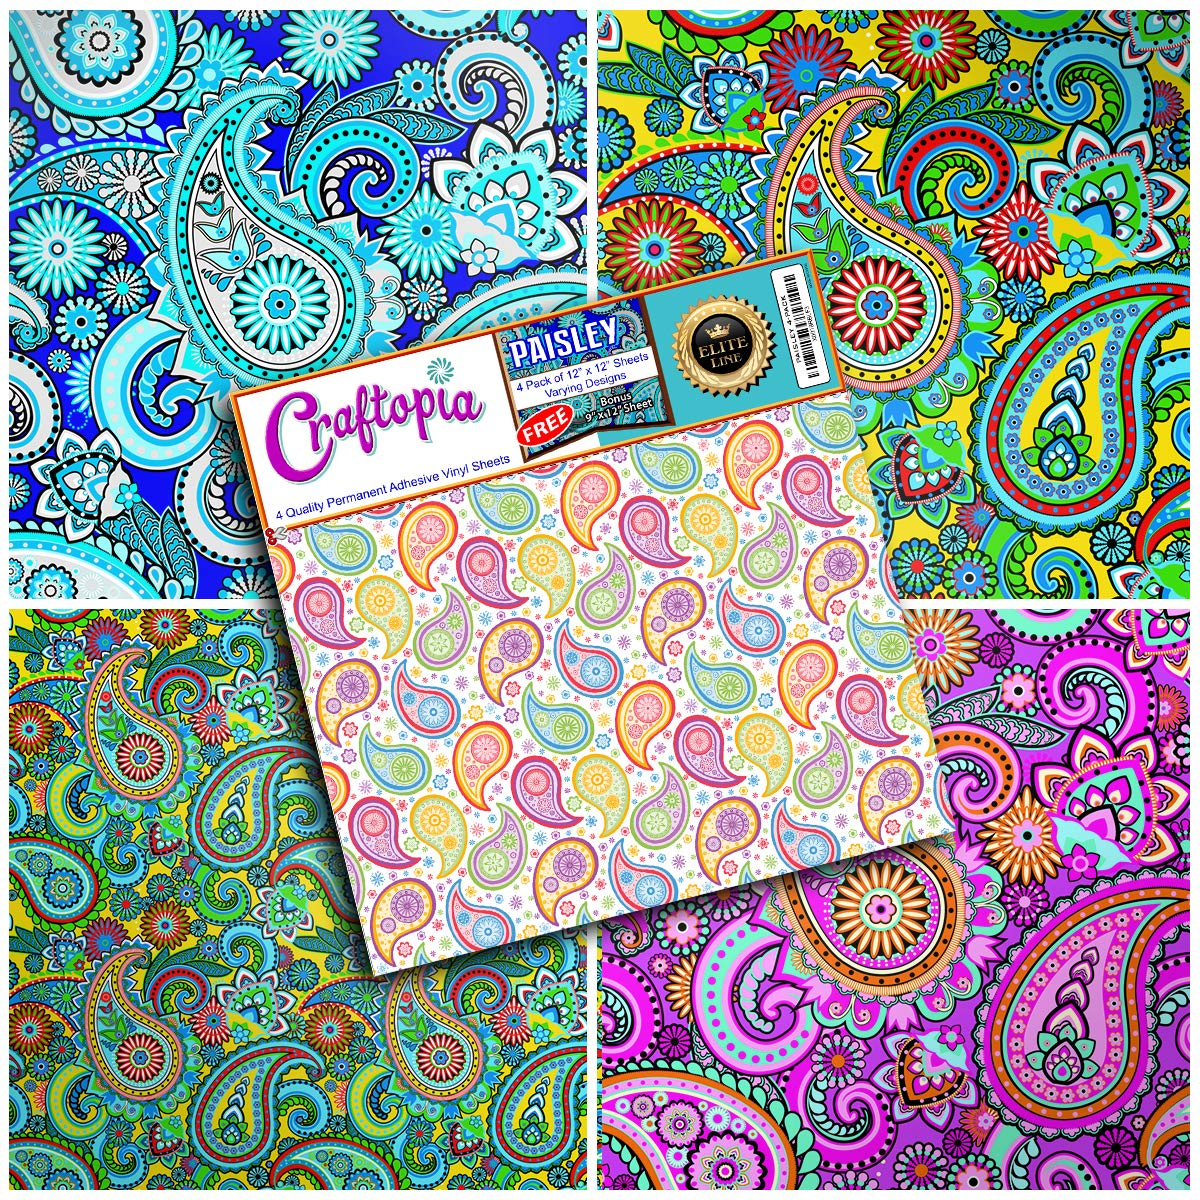 Craftopia's Paisley Pattern Self Adhesive Craft Vinyl Sheets | 4+1 Assorted Vinyl Pack for Cricut, Silhouette Cameo, Craft Cutters, Printers, Letters, Decals